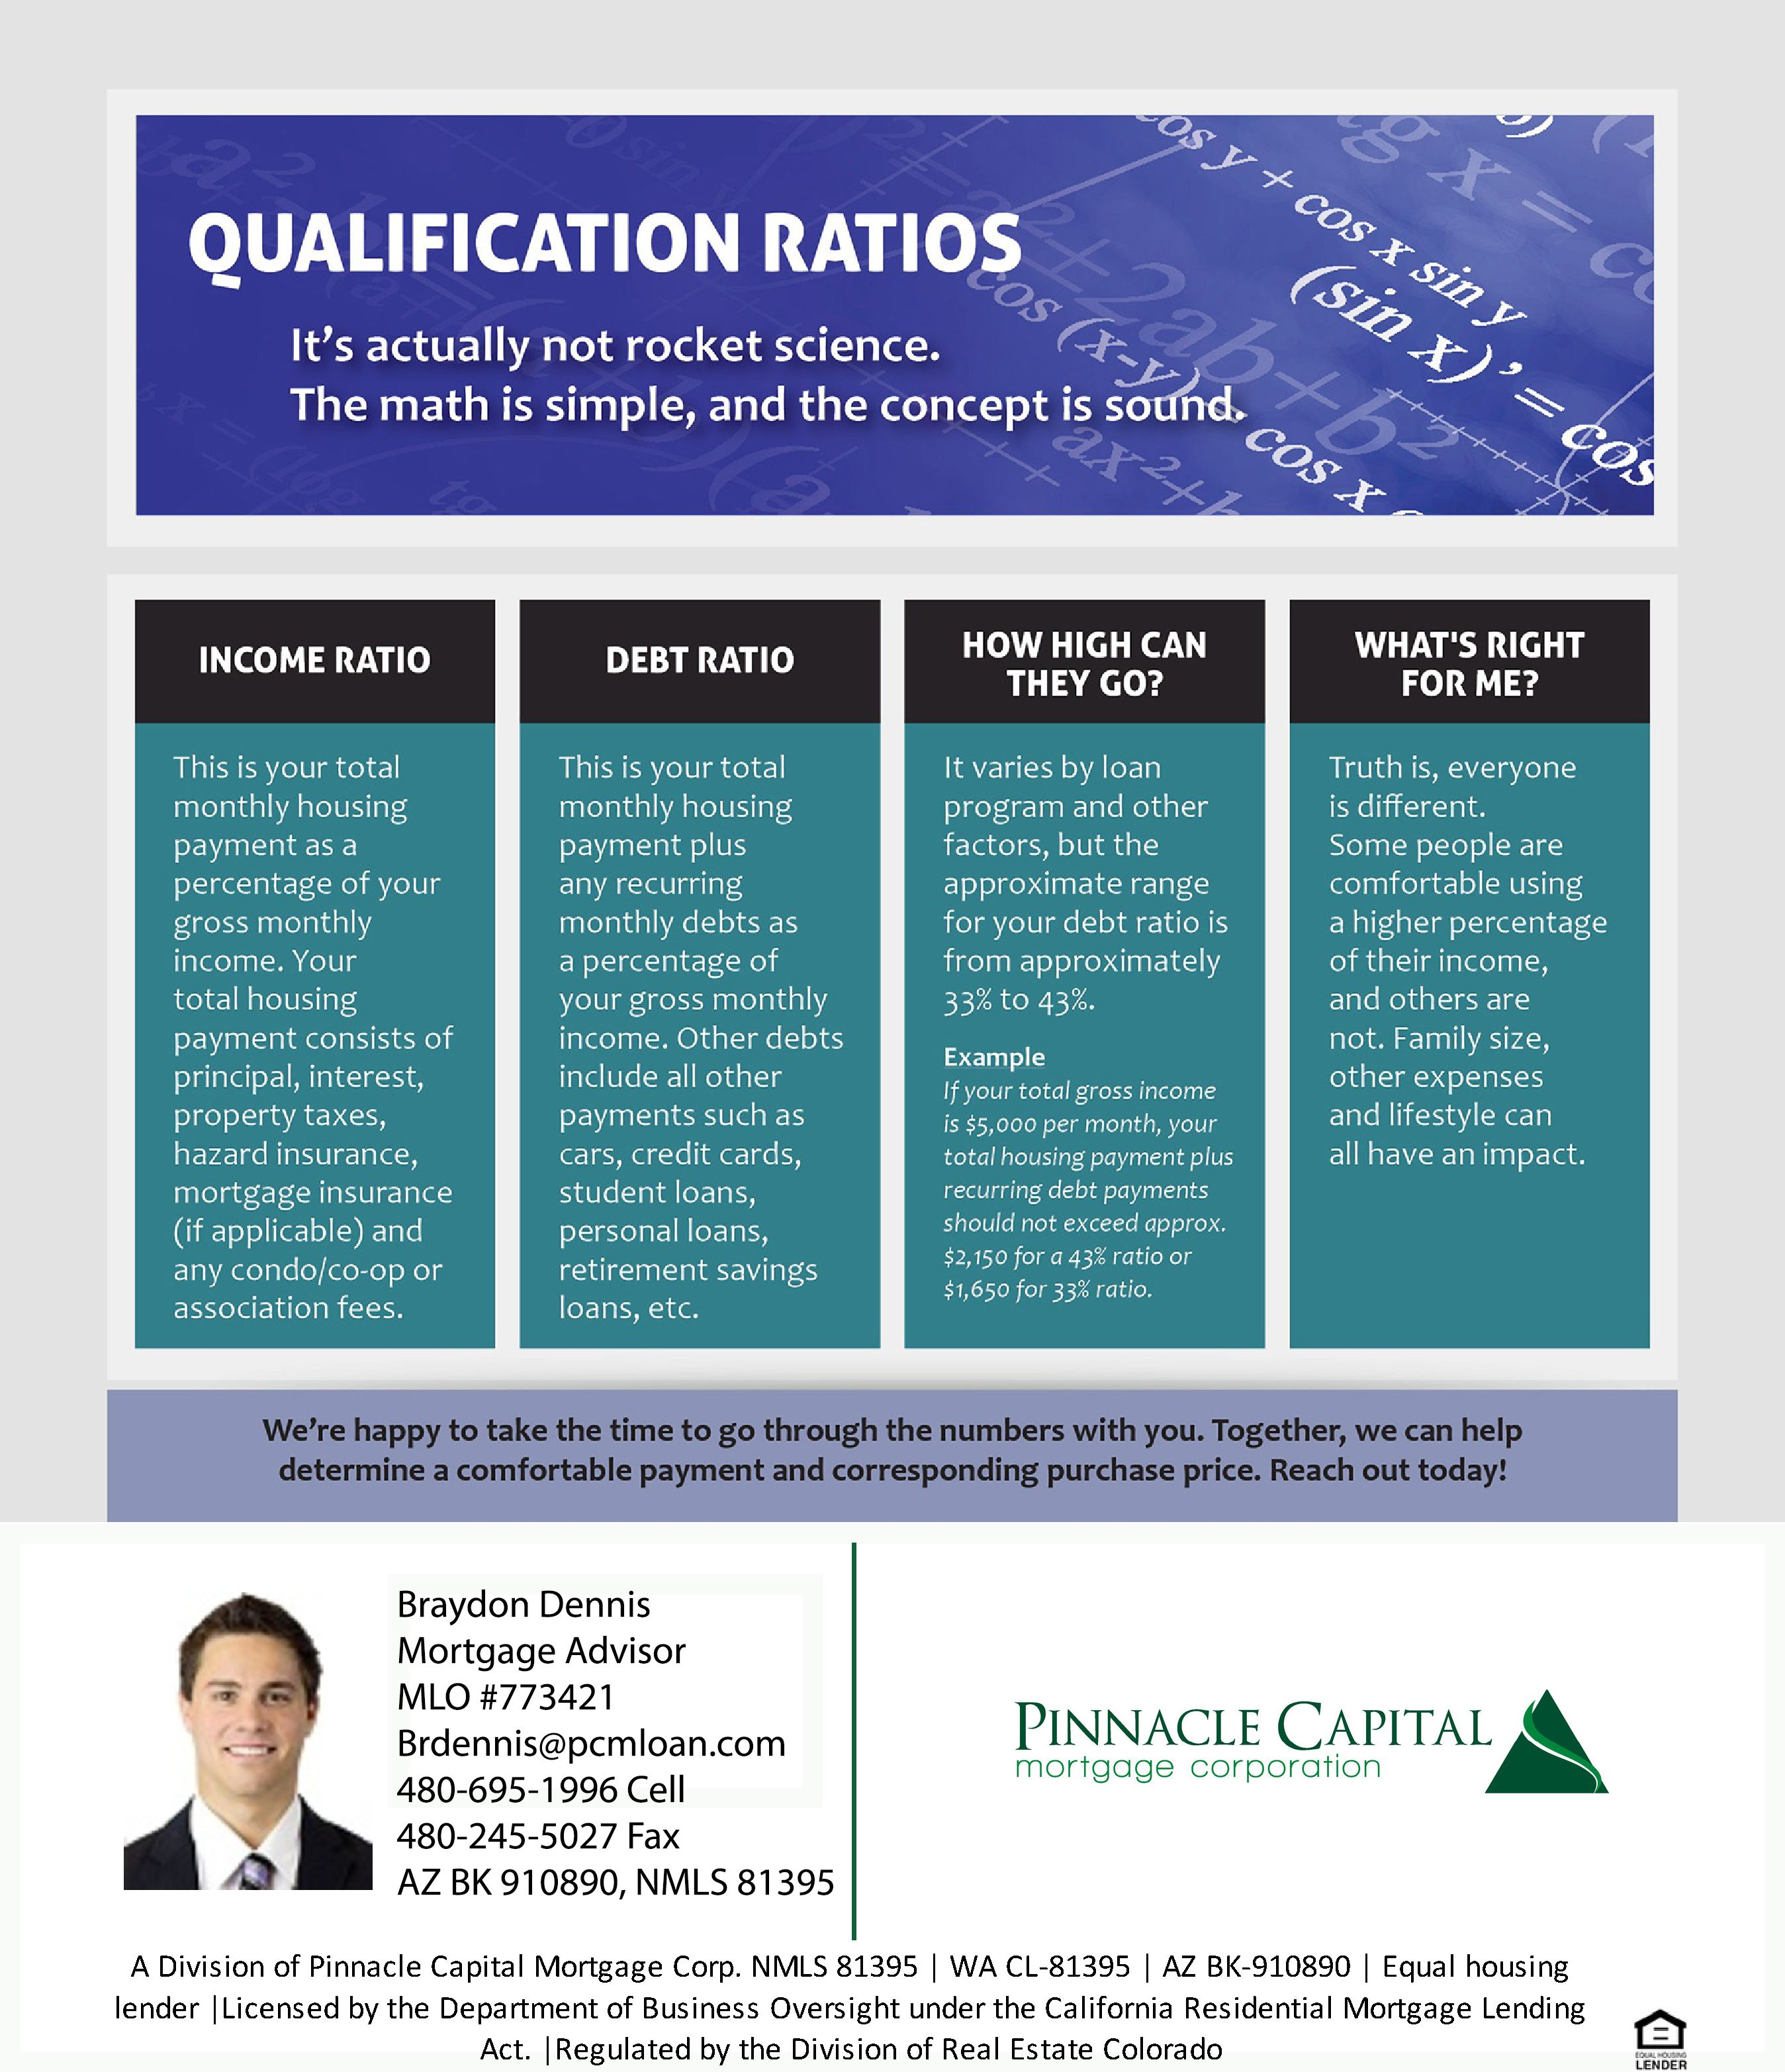 Qualification Ratios With Images Get Educated Need A Loan